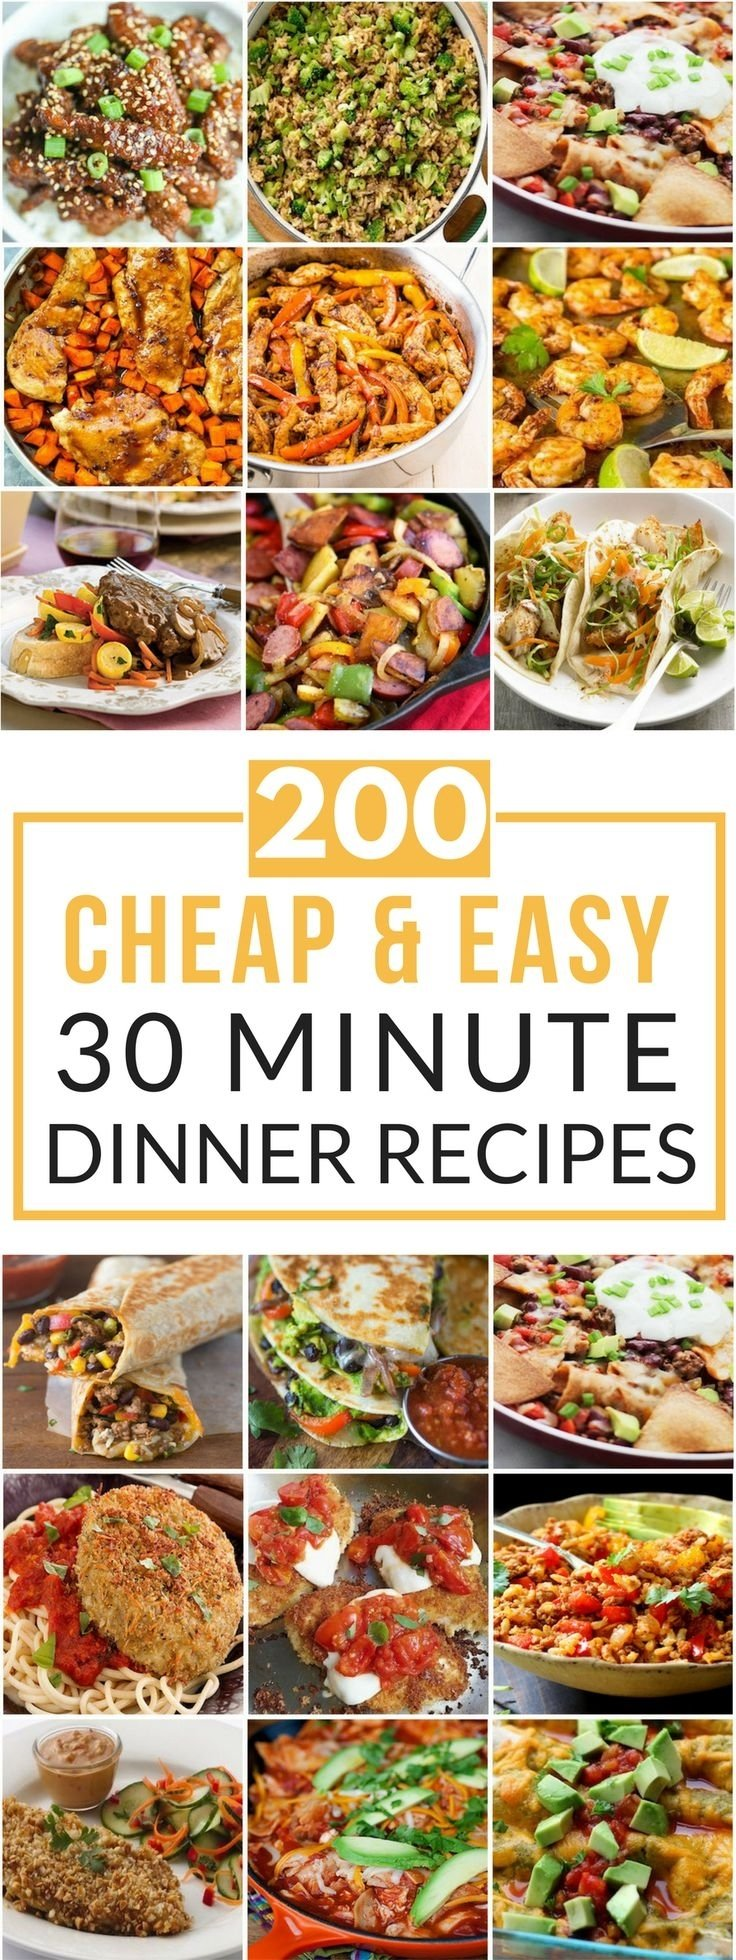 10 Nice Cheap Dinner Ideas For 2 886 best budget recipes images on pinterest cheap meals cooking 2020